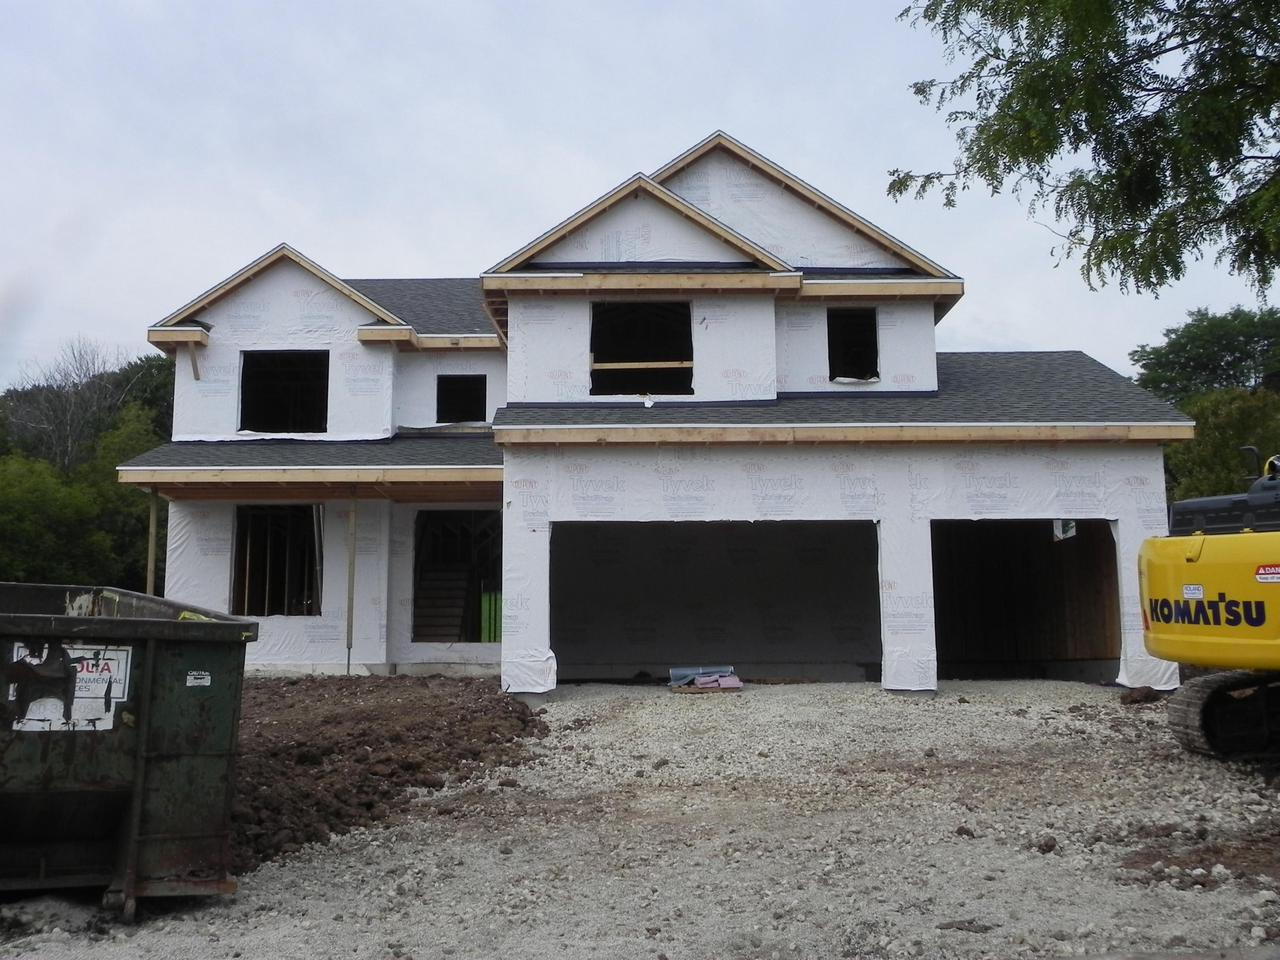 New construction two story colonial with a open concept design. Enter the massive foyer with 1st fl offering 9 ft ceilings.  Free flowing kitchen/dinette and Gr room. Kitchen offers tons of cabinets, snack island, granite, walk in pantry and school desk.  Main level dining room or flex room + full mud room. The upper level has 4 bedrooms a upper laundry room.  Master suite with pitched ceilings, his/her walk in closets and master bath  with a walk in tile shower w/ 2 shower heads and double vanity  w/granite WOW!  Deck off of dinette, GFP Gr room + 3.5 car attached garage.  Lower offers radon system, full bath rough and exposed window to rear yard.   Maintenance  free ext. Waling distance to parks, schools and downtown Grafton.